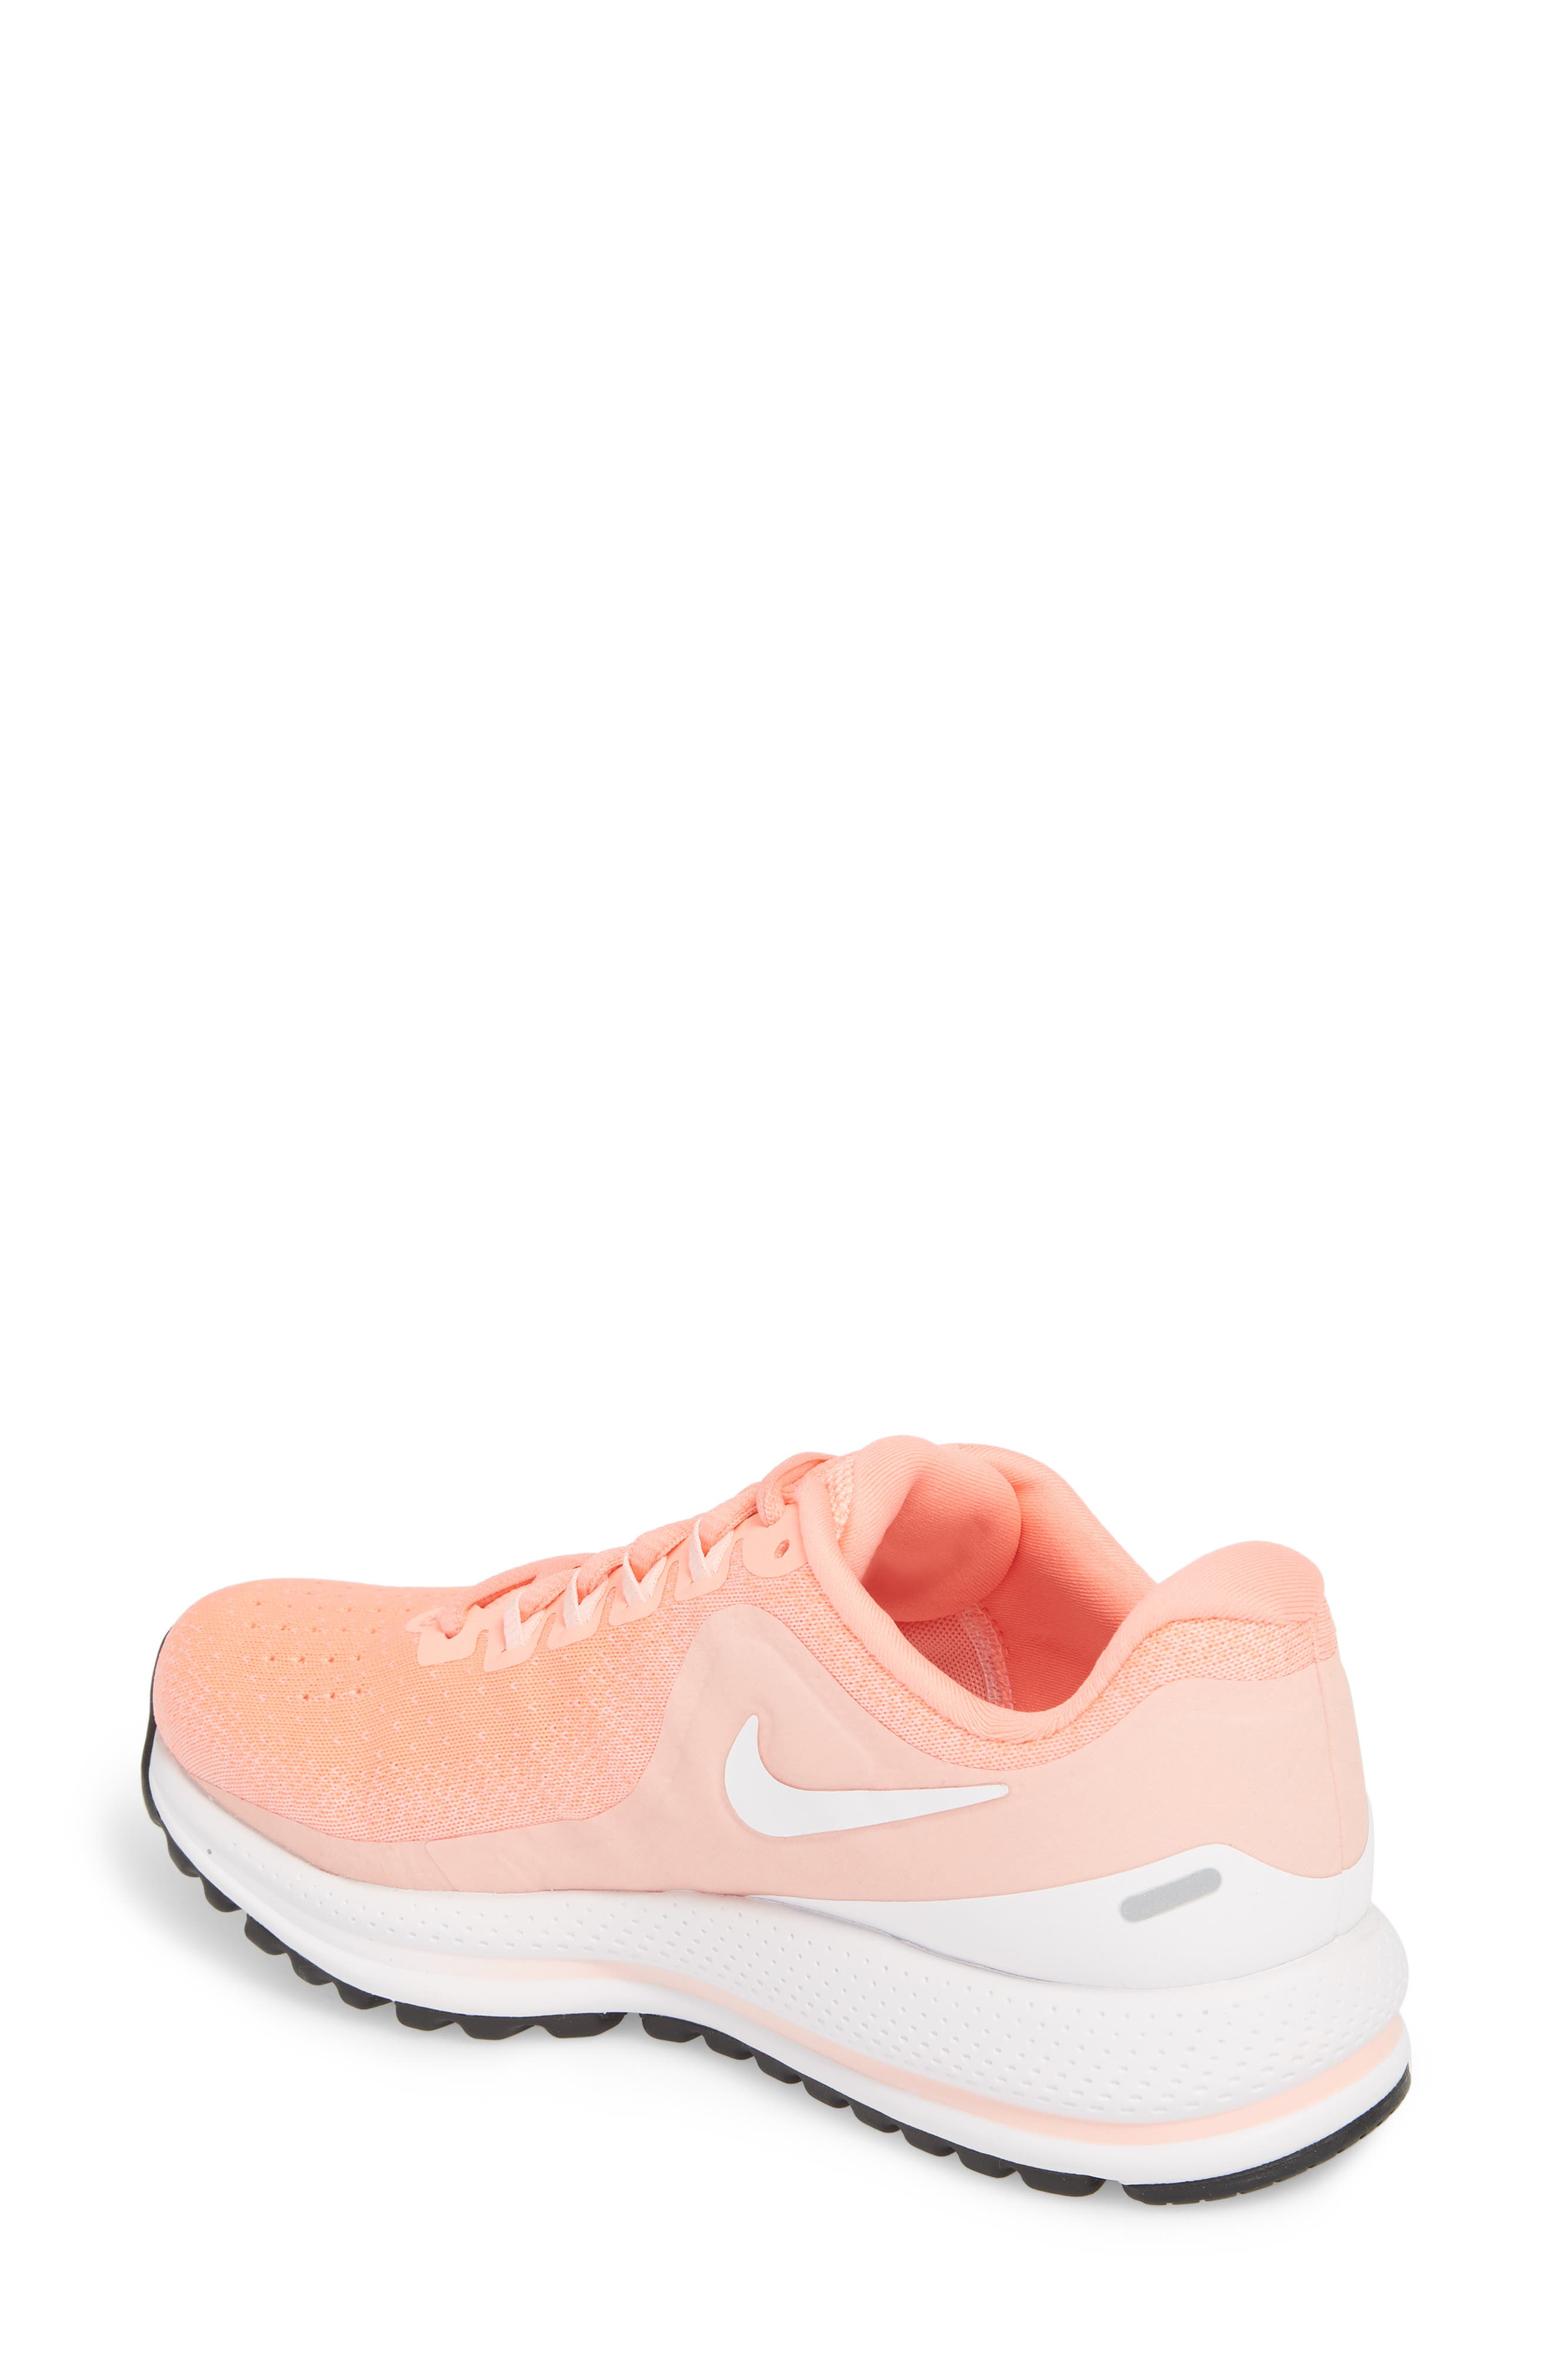 Air Zoom Vomero 13 Running Shoe,                             Alternate thumbnail 18, color,